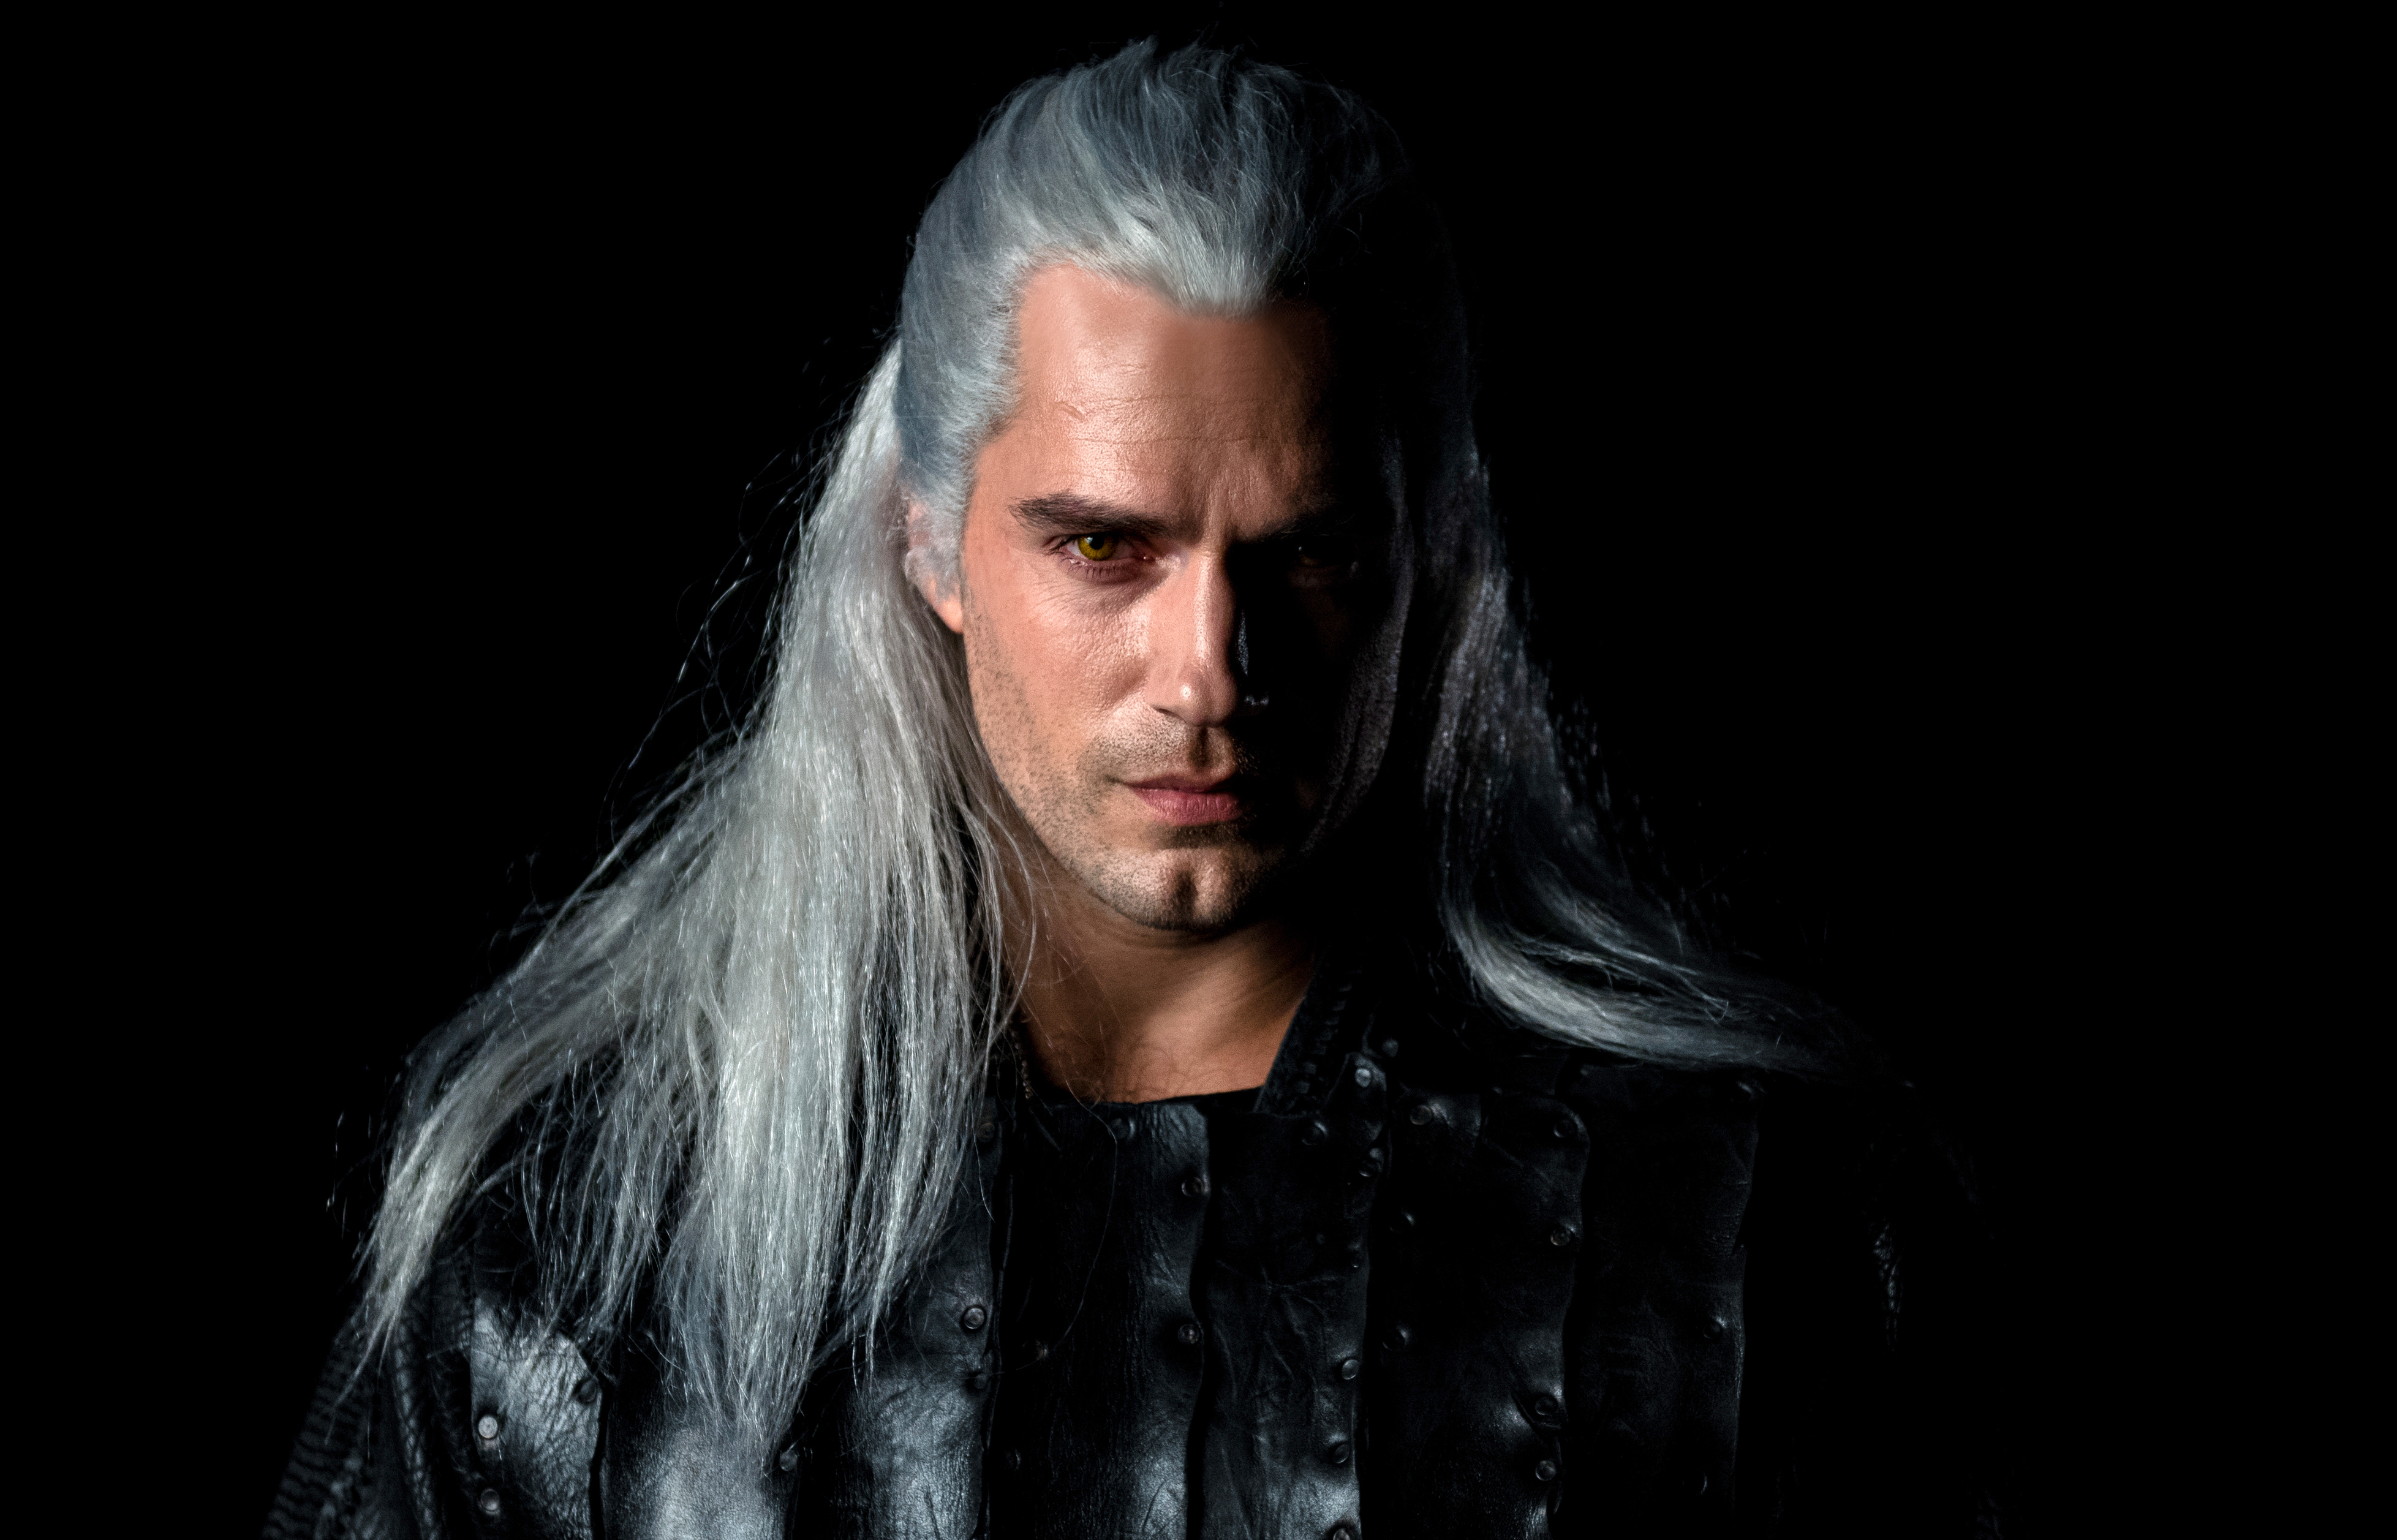 Henry Cavill is a stoic Geralt in first look at Netflix's The Witcher